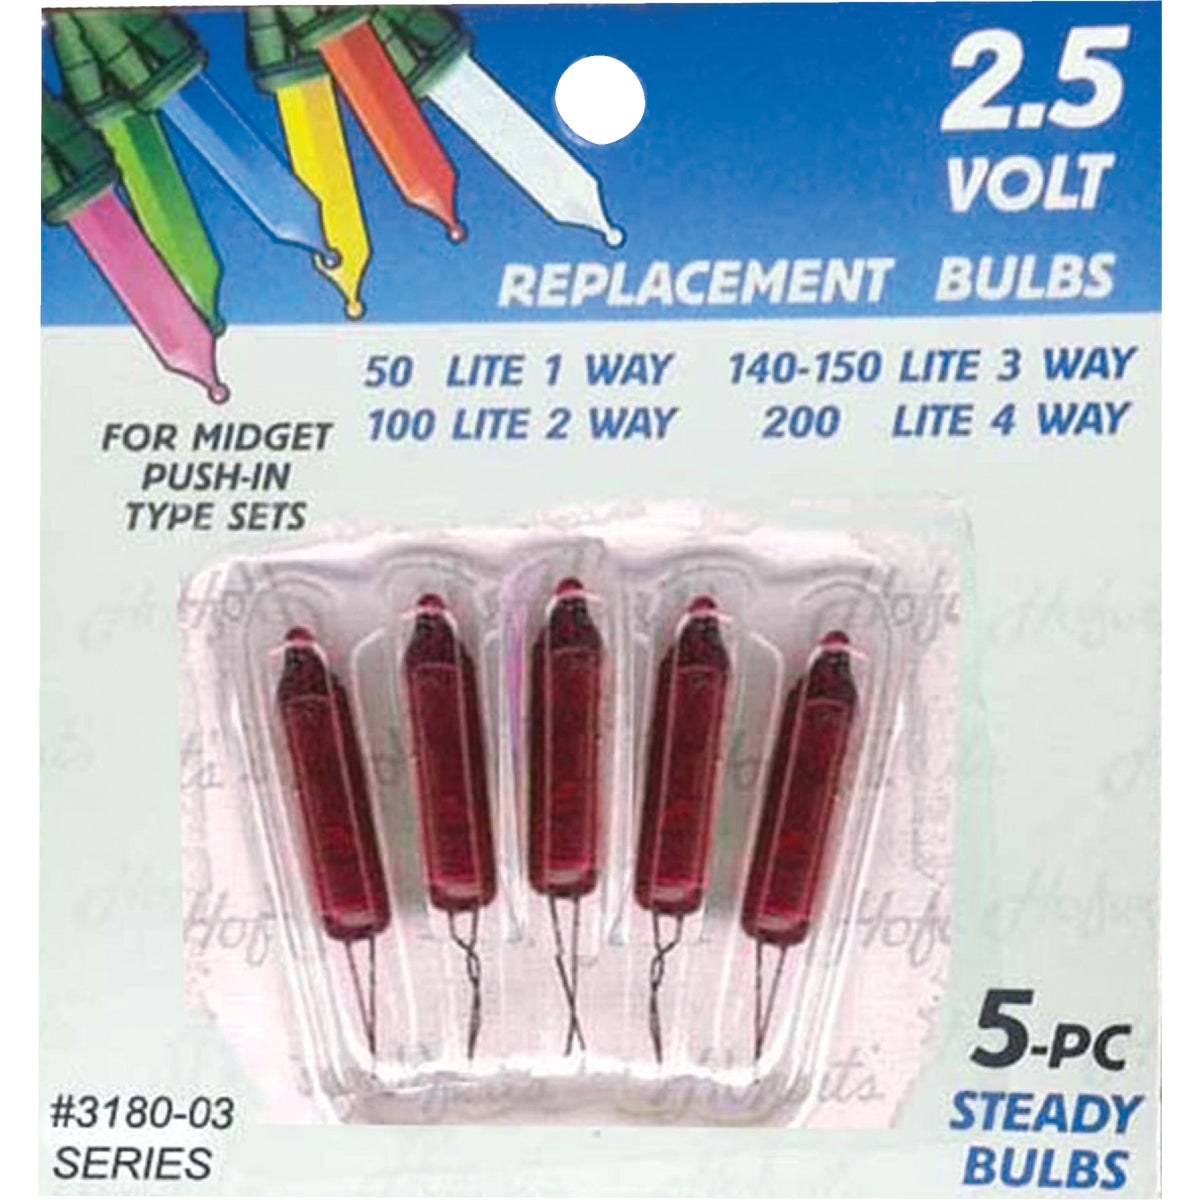 5PK 2.5V RED BULB - 3180-03 by J Hofert-y